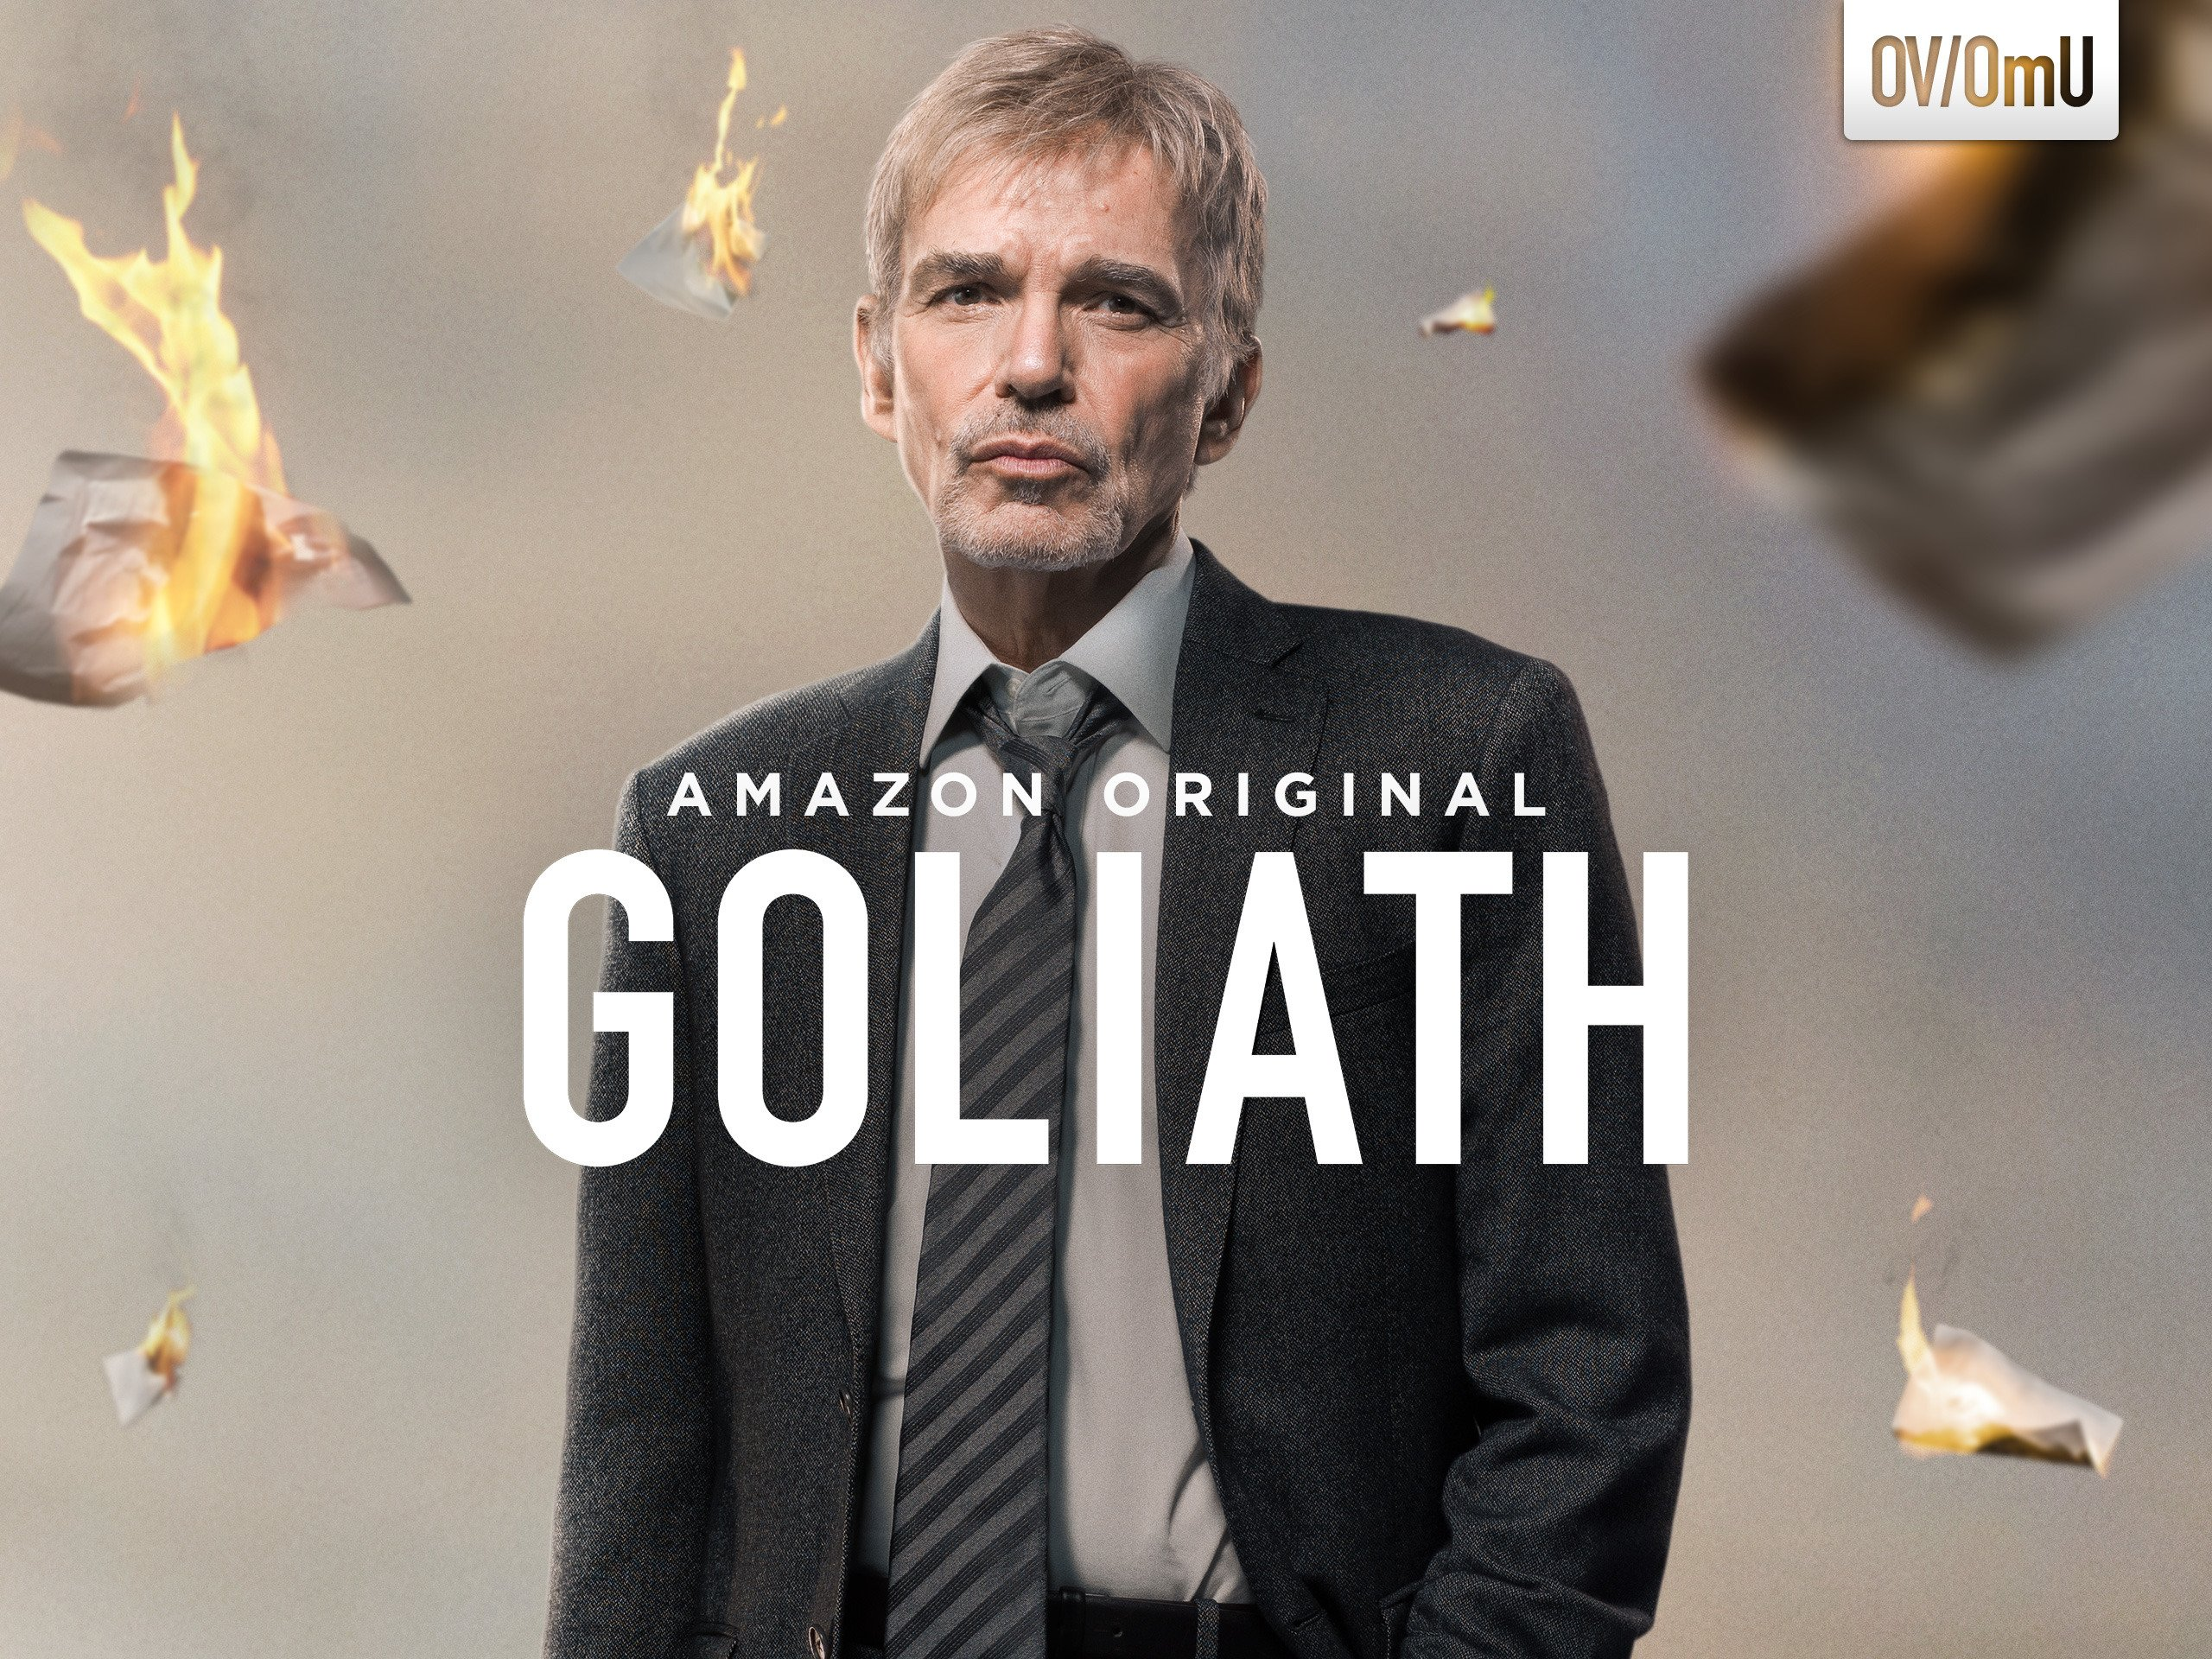 Amazonde Goliath Staffel 1 Ovomu Ansehen Prime Video